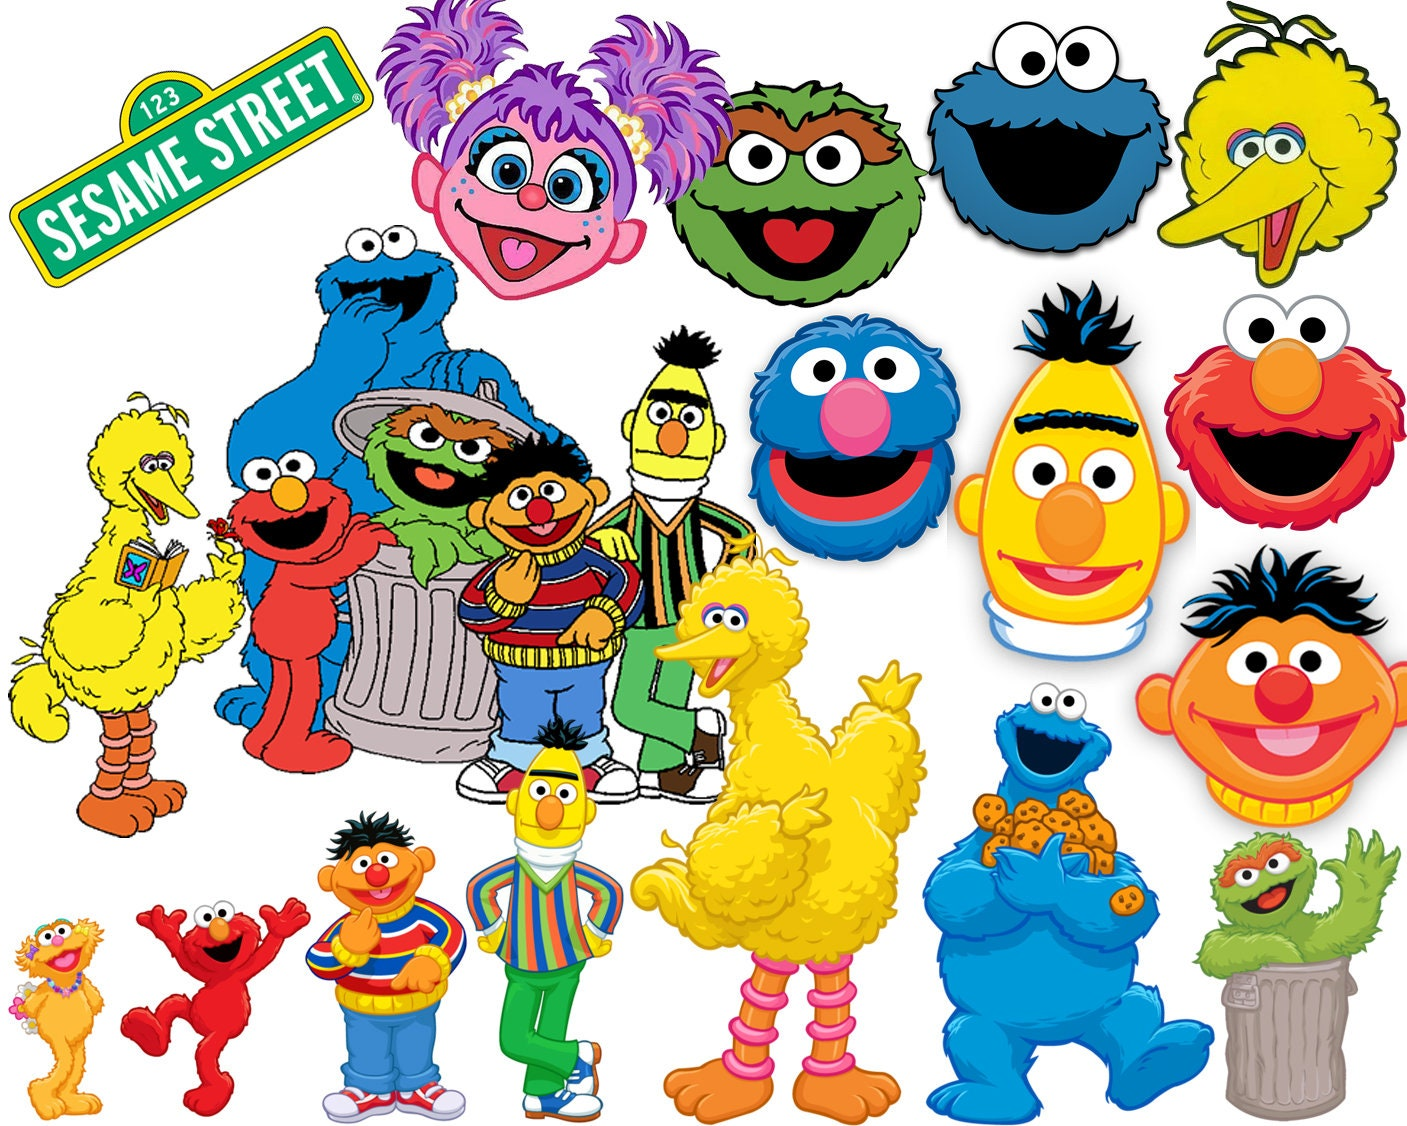 It's just a picture of Trust Printable Sesame Street Characters